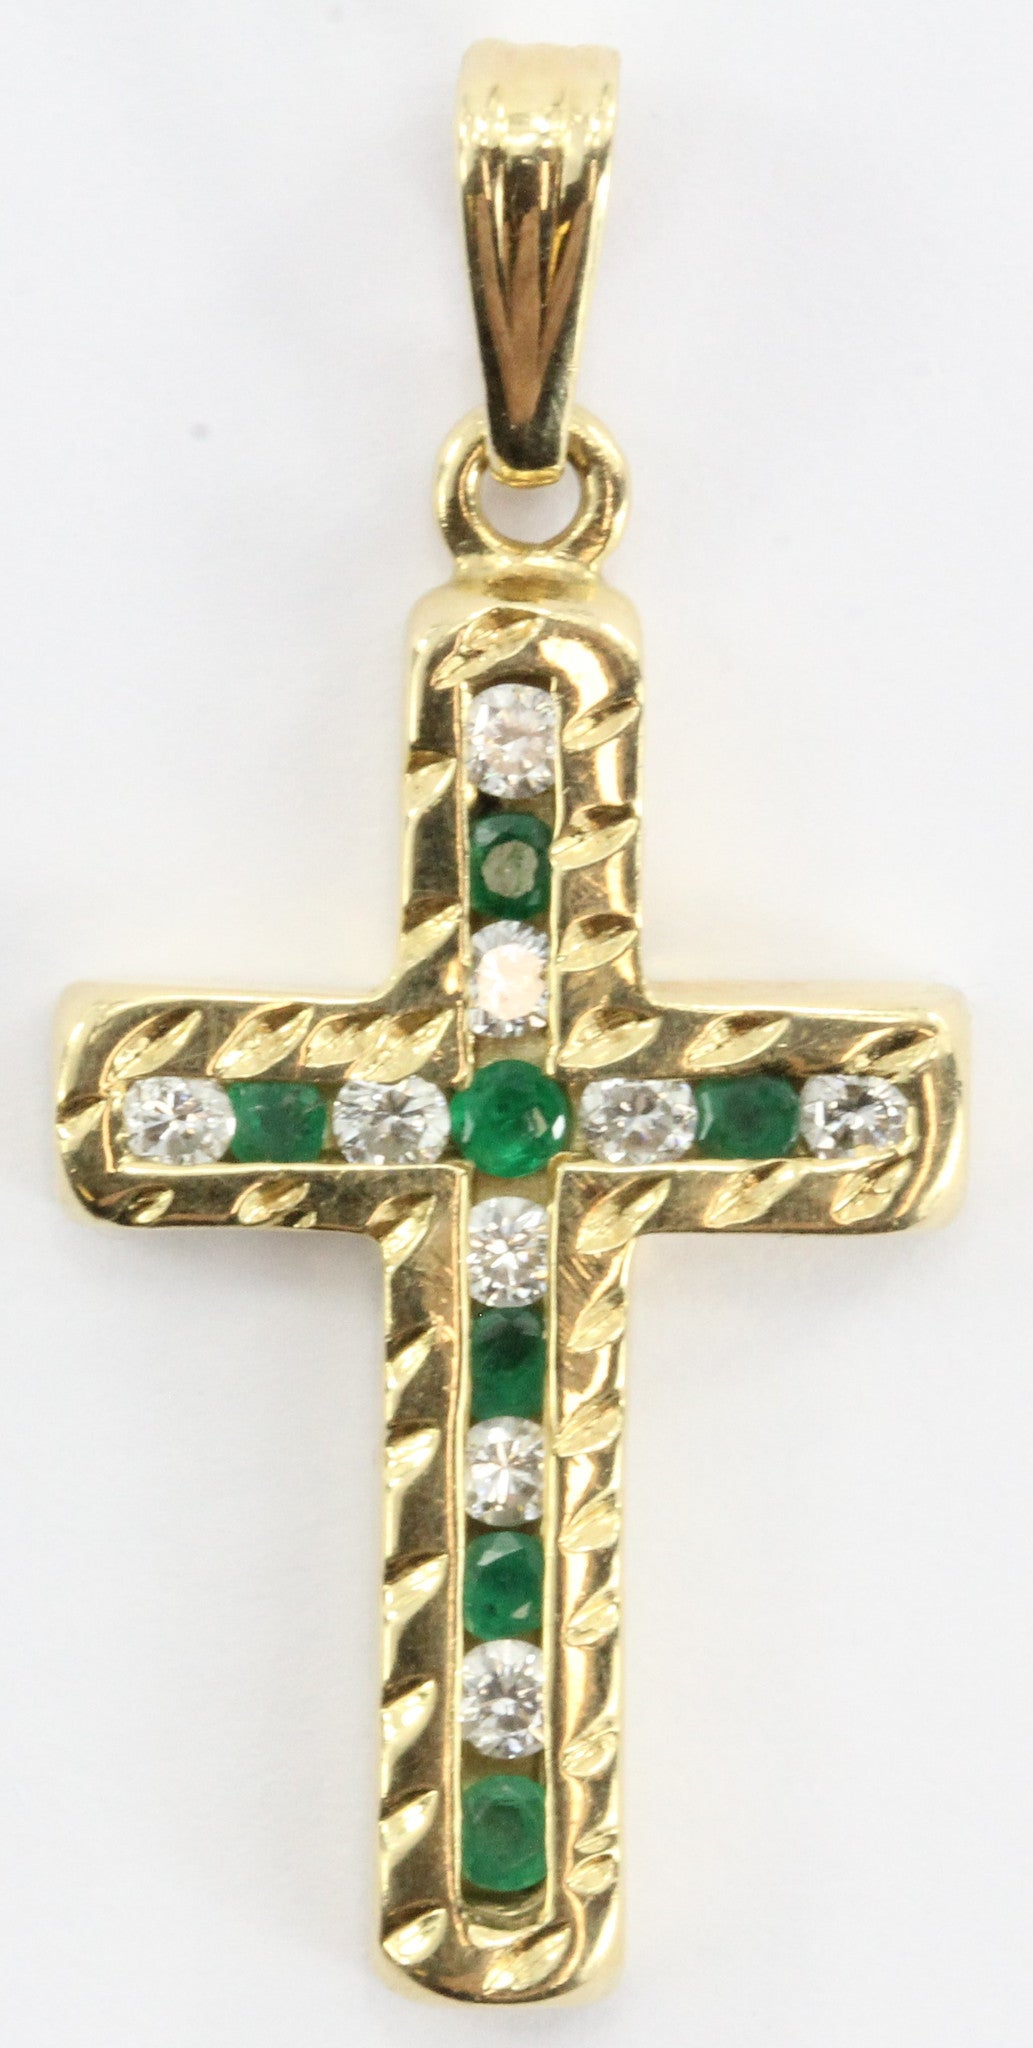 Vintage 18K Gold Diamond & Emerald Cross Pendant 1/2 Carat Total Weight - Queen May